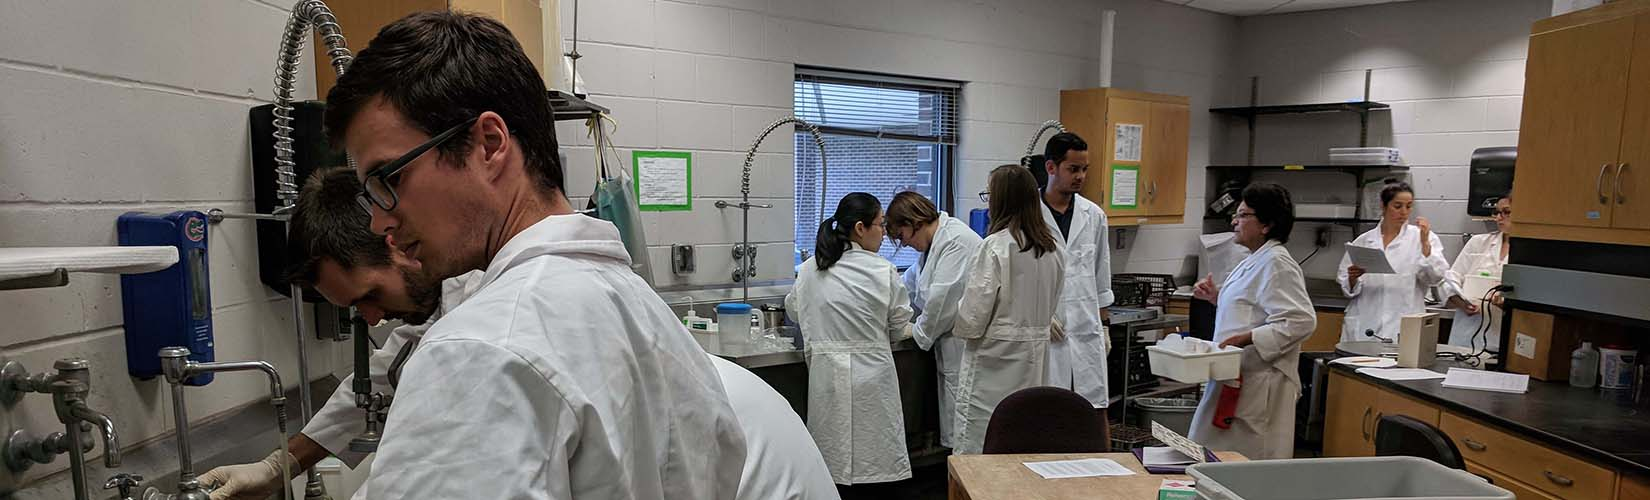 students and faculty working in the laboratory